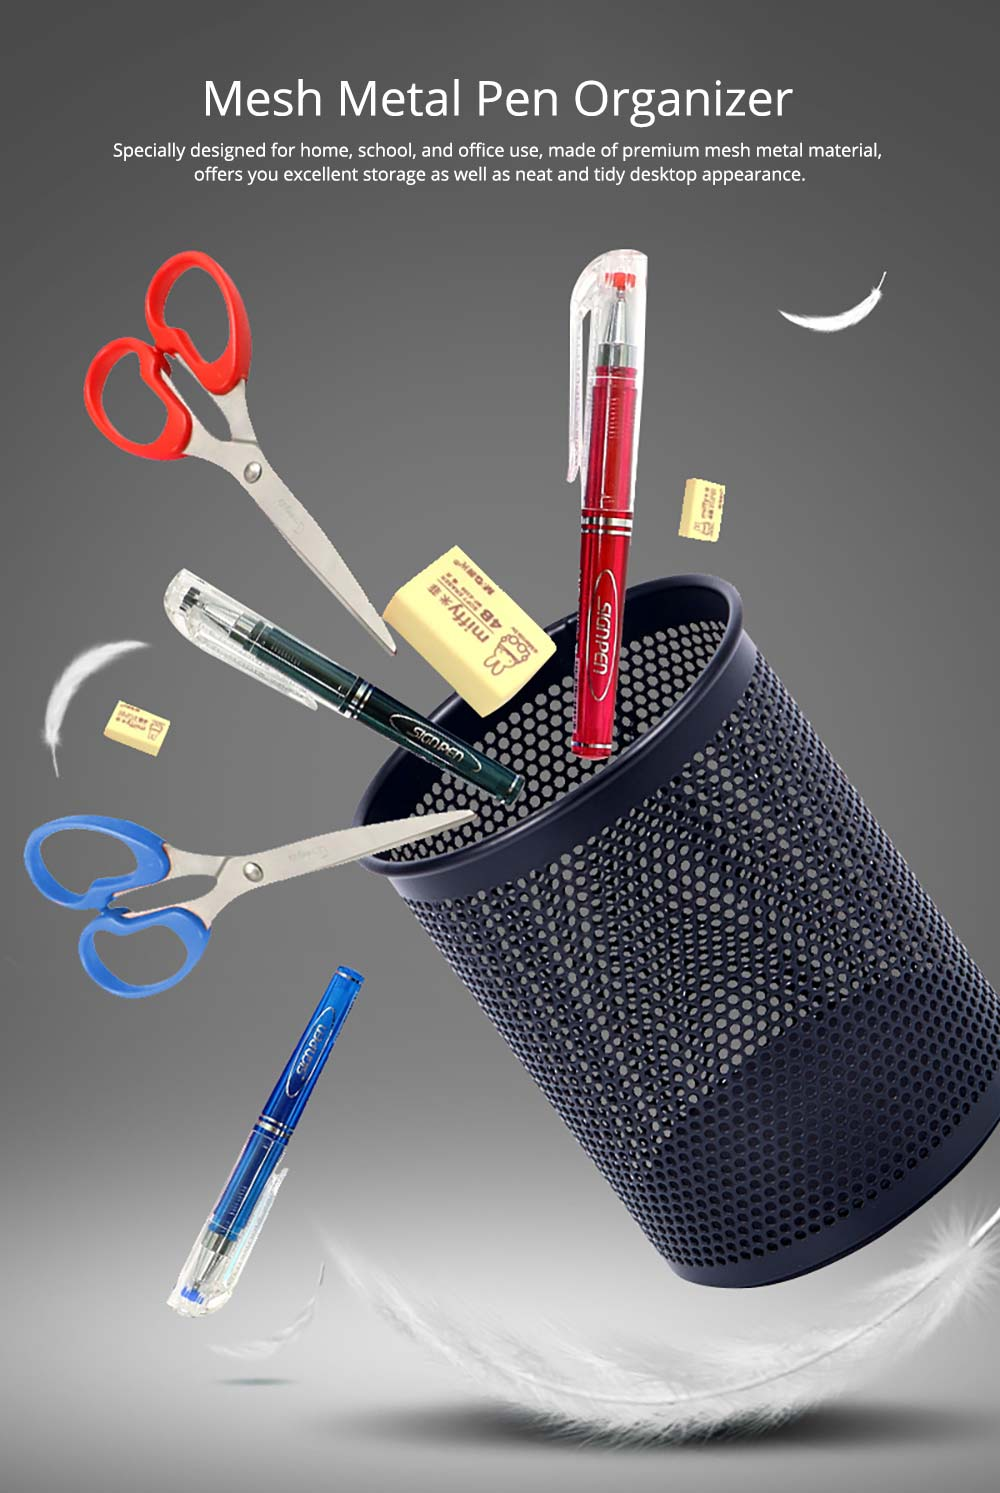 Desktop Pencil Holder Durable Metal Organizer for Pens Clips Scissors, Multipurpose Organizer Office Supplies Home School Office Essential 6